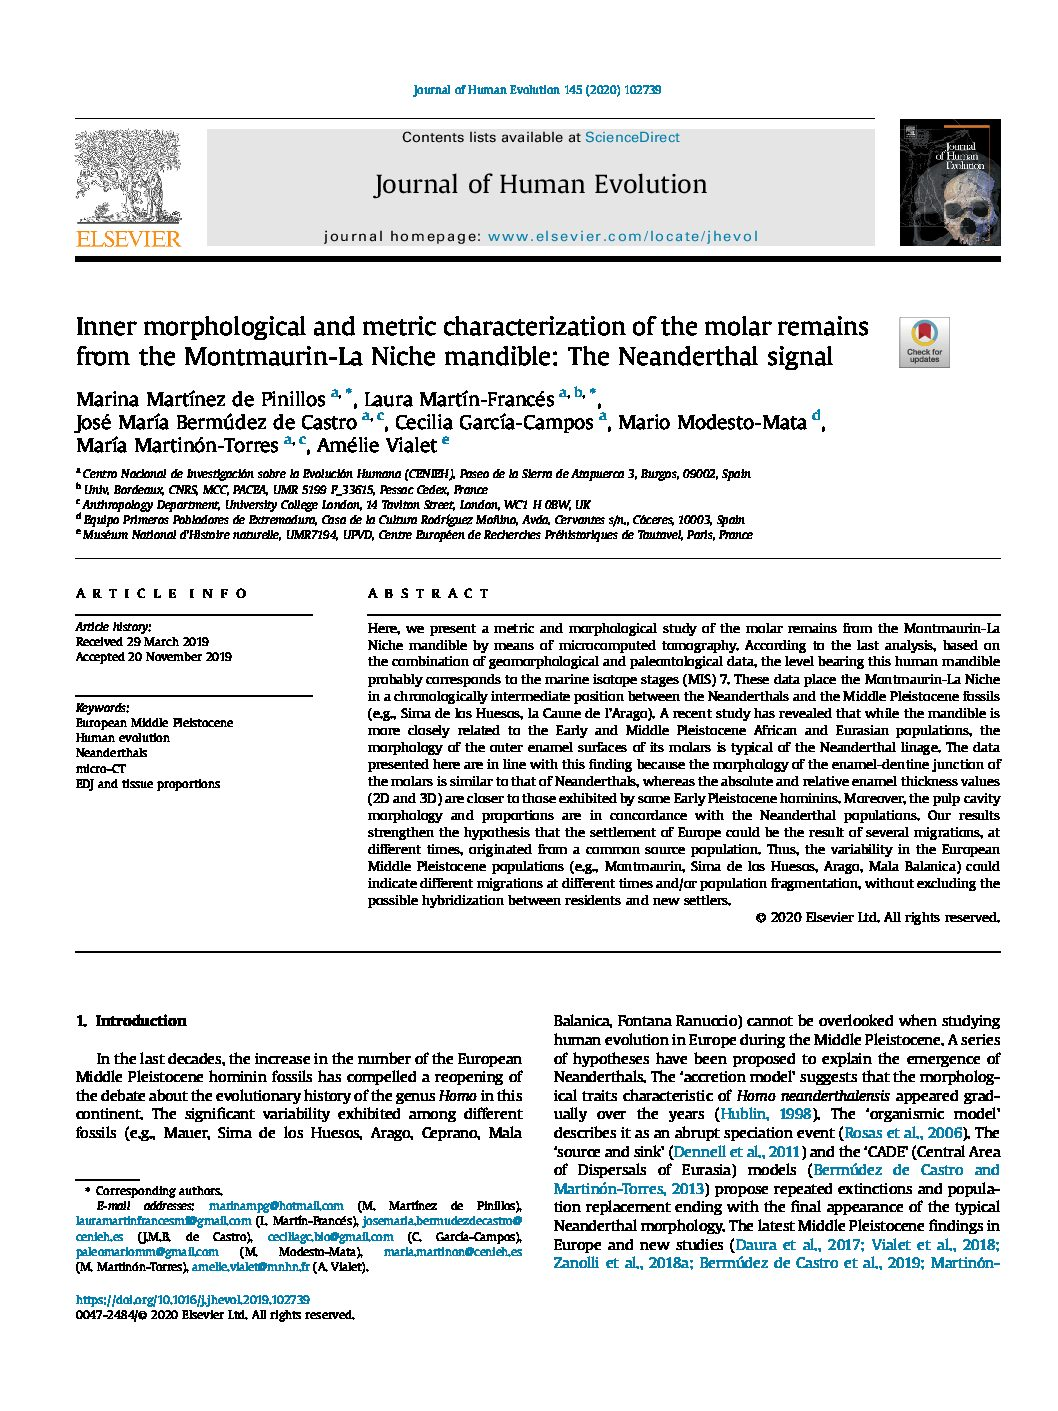 Inner morphological and metric characterization of the molar remains from the Montmaurin-La Niche mandible: The Neanderthal signal